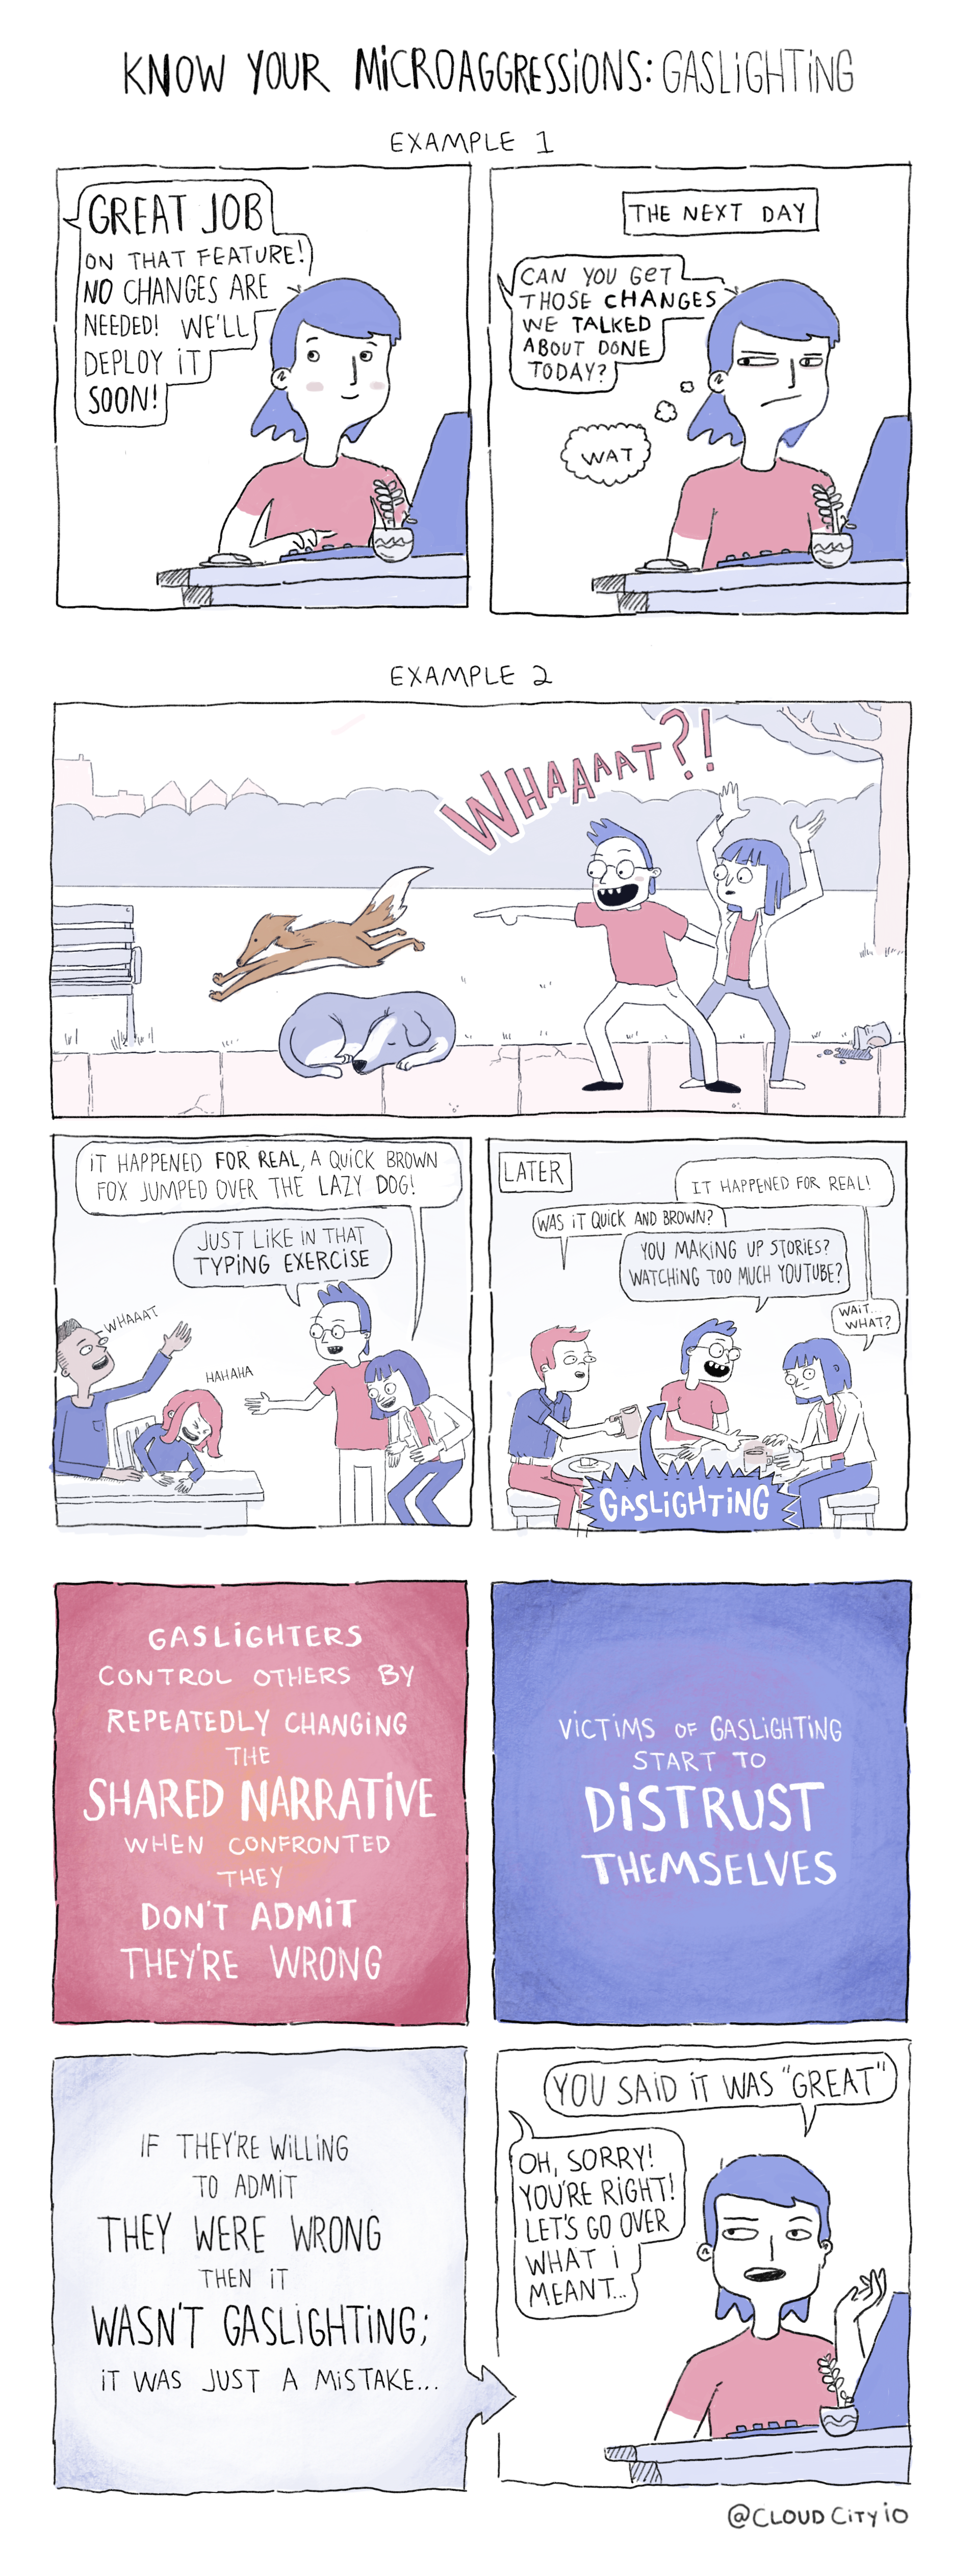 A comic portraying the dangers of gaslighting